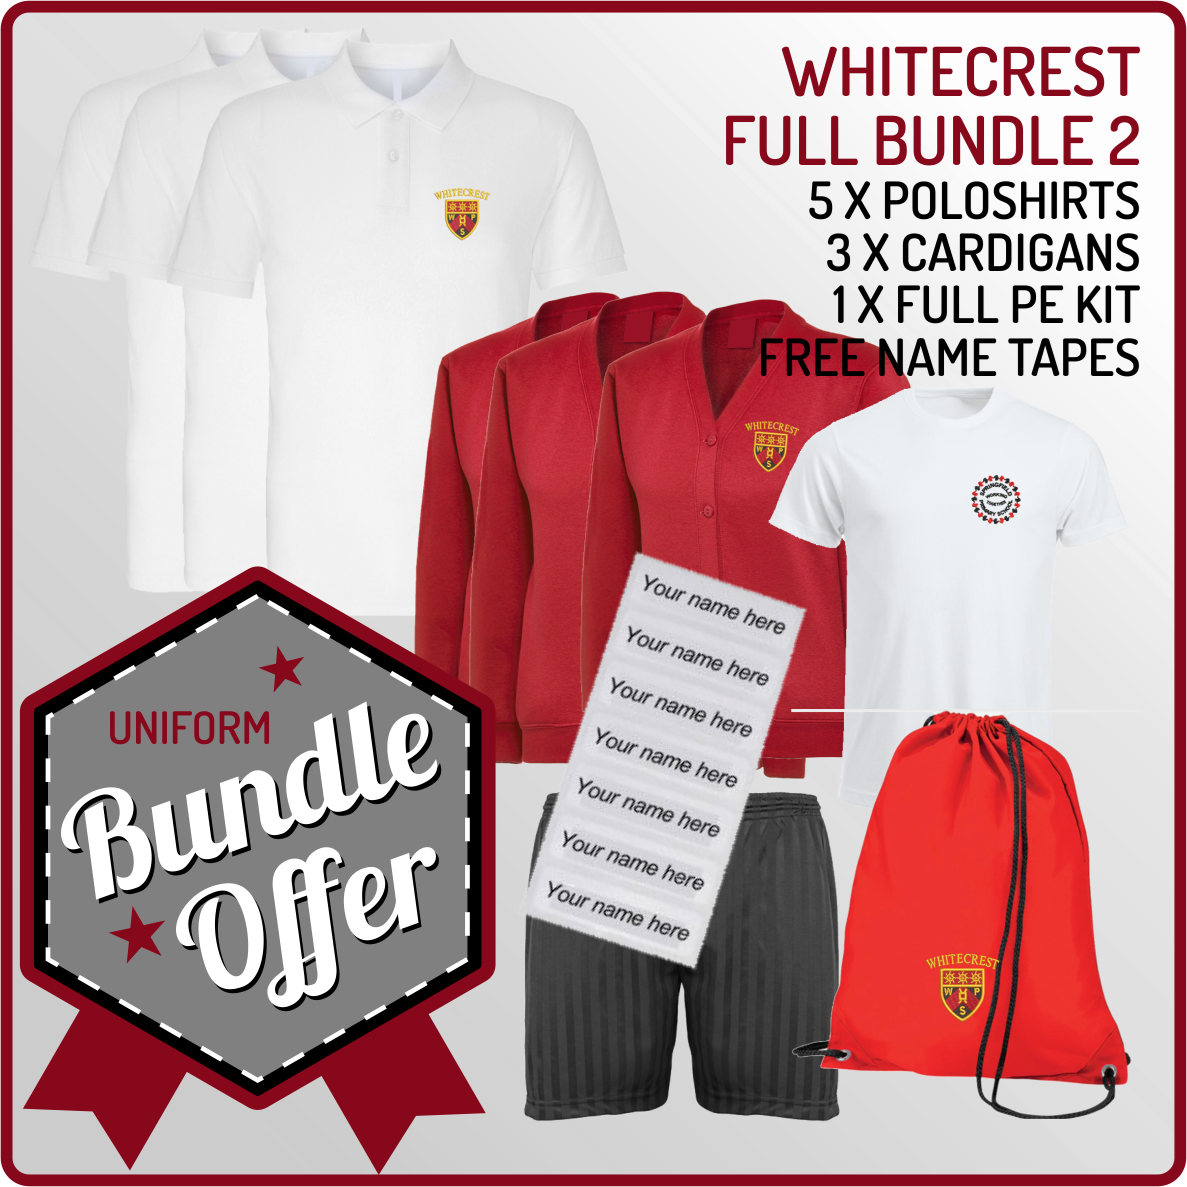 Bundle offer of 5 Poloshrts, 3 Cardigans, PE T, Shorts and PE Back - includes FREE name tapes!